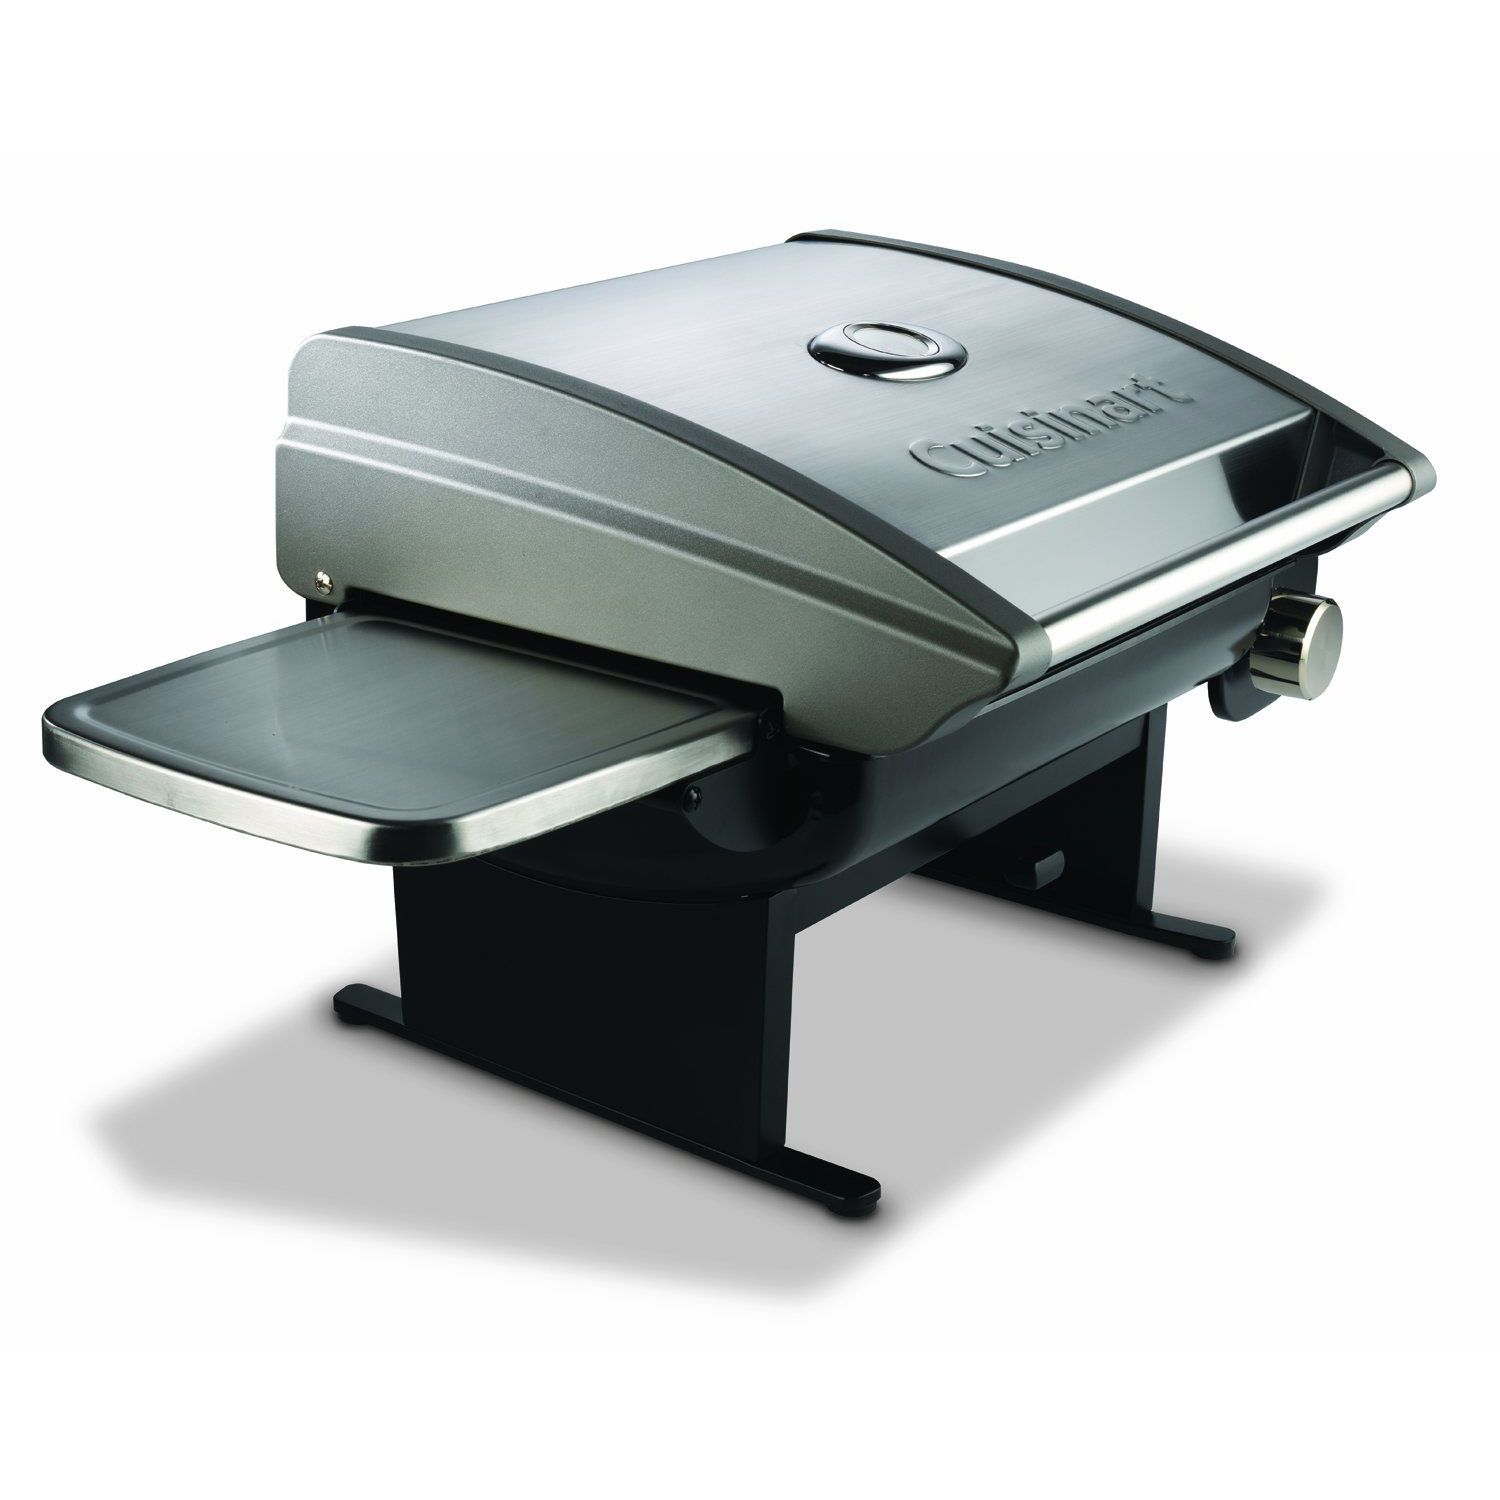 Cuisinart CGG-200 All-Foods Portable Propane Grill